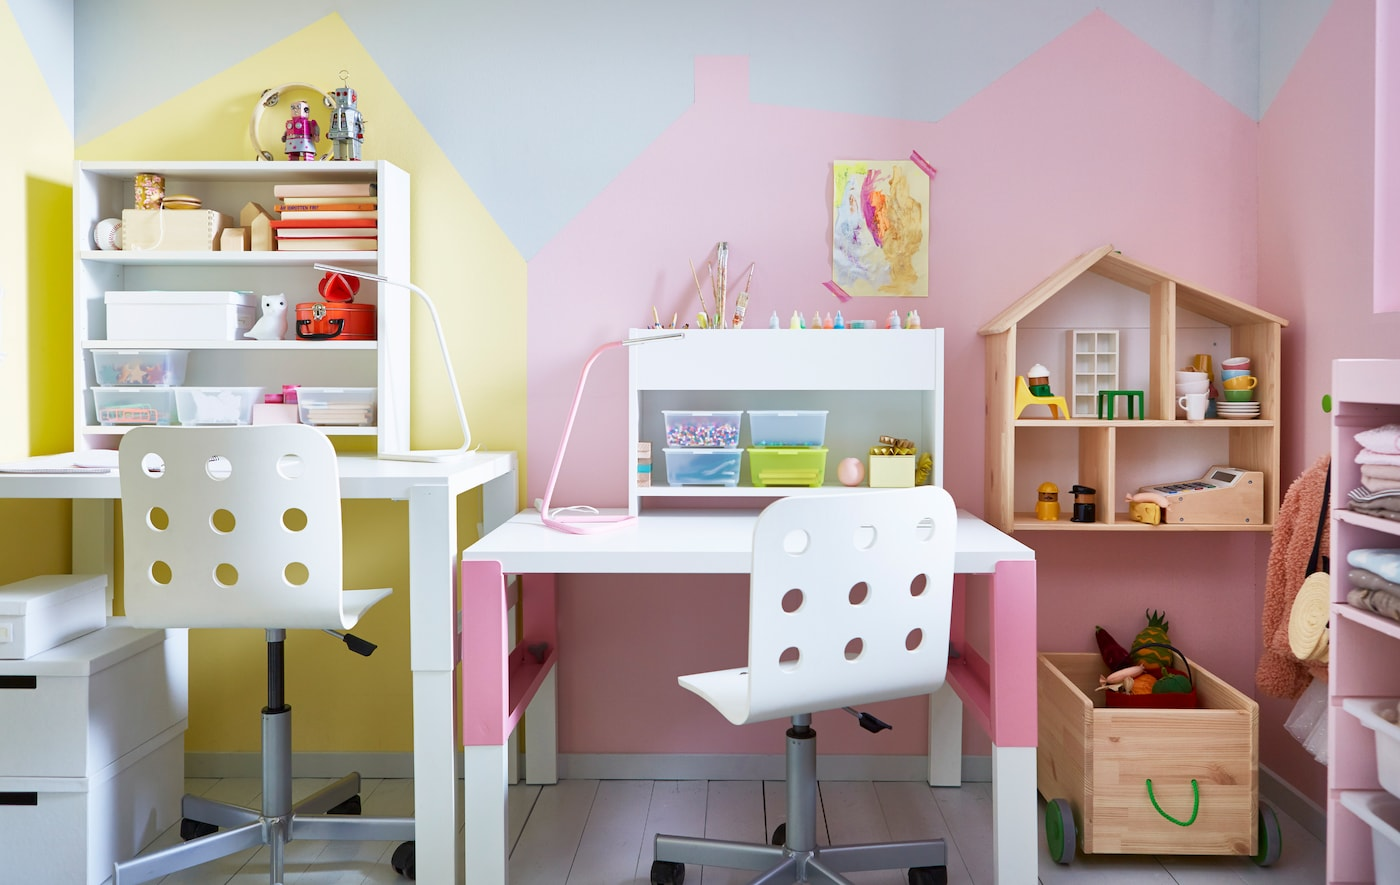 Two adjustable desks and chairs side-by-side in a shared kids' room, with some storage units and a dolls house.